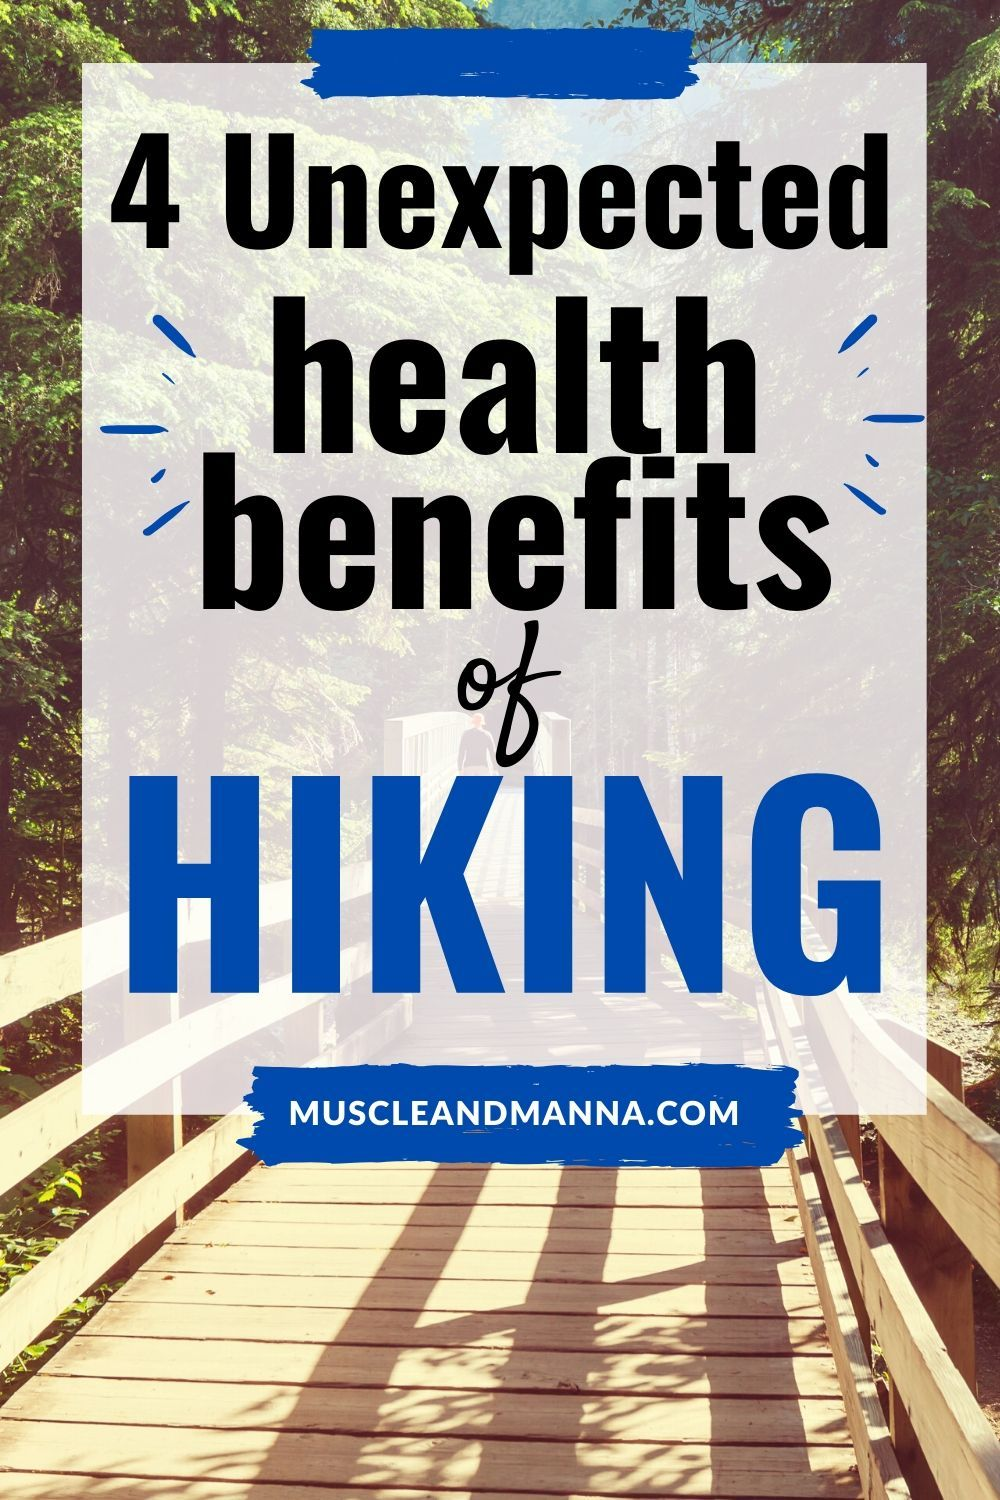 Hiking provides an array of health benefits here are 4